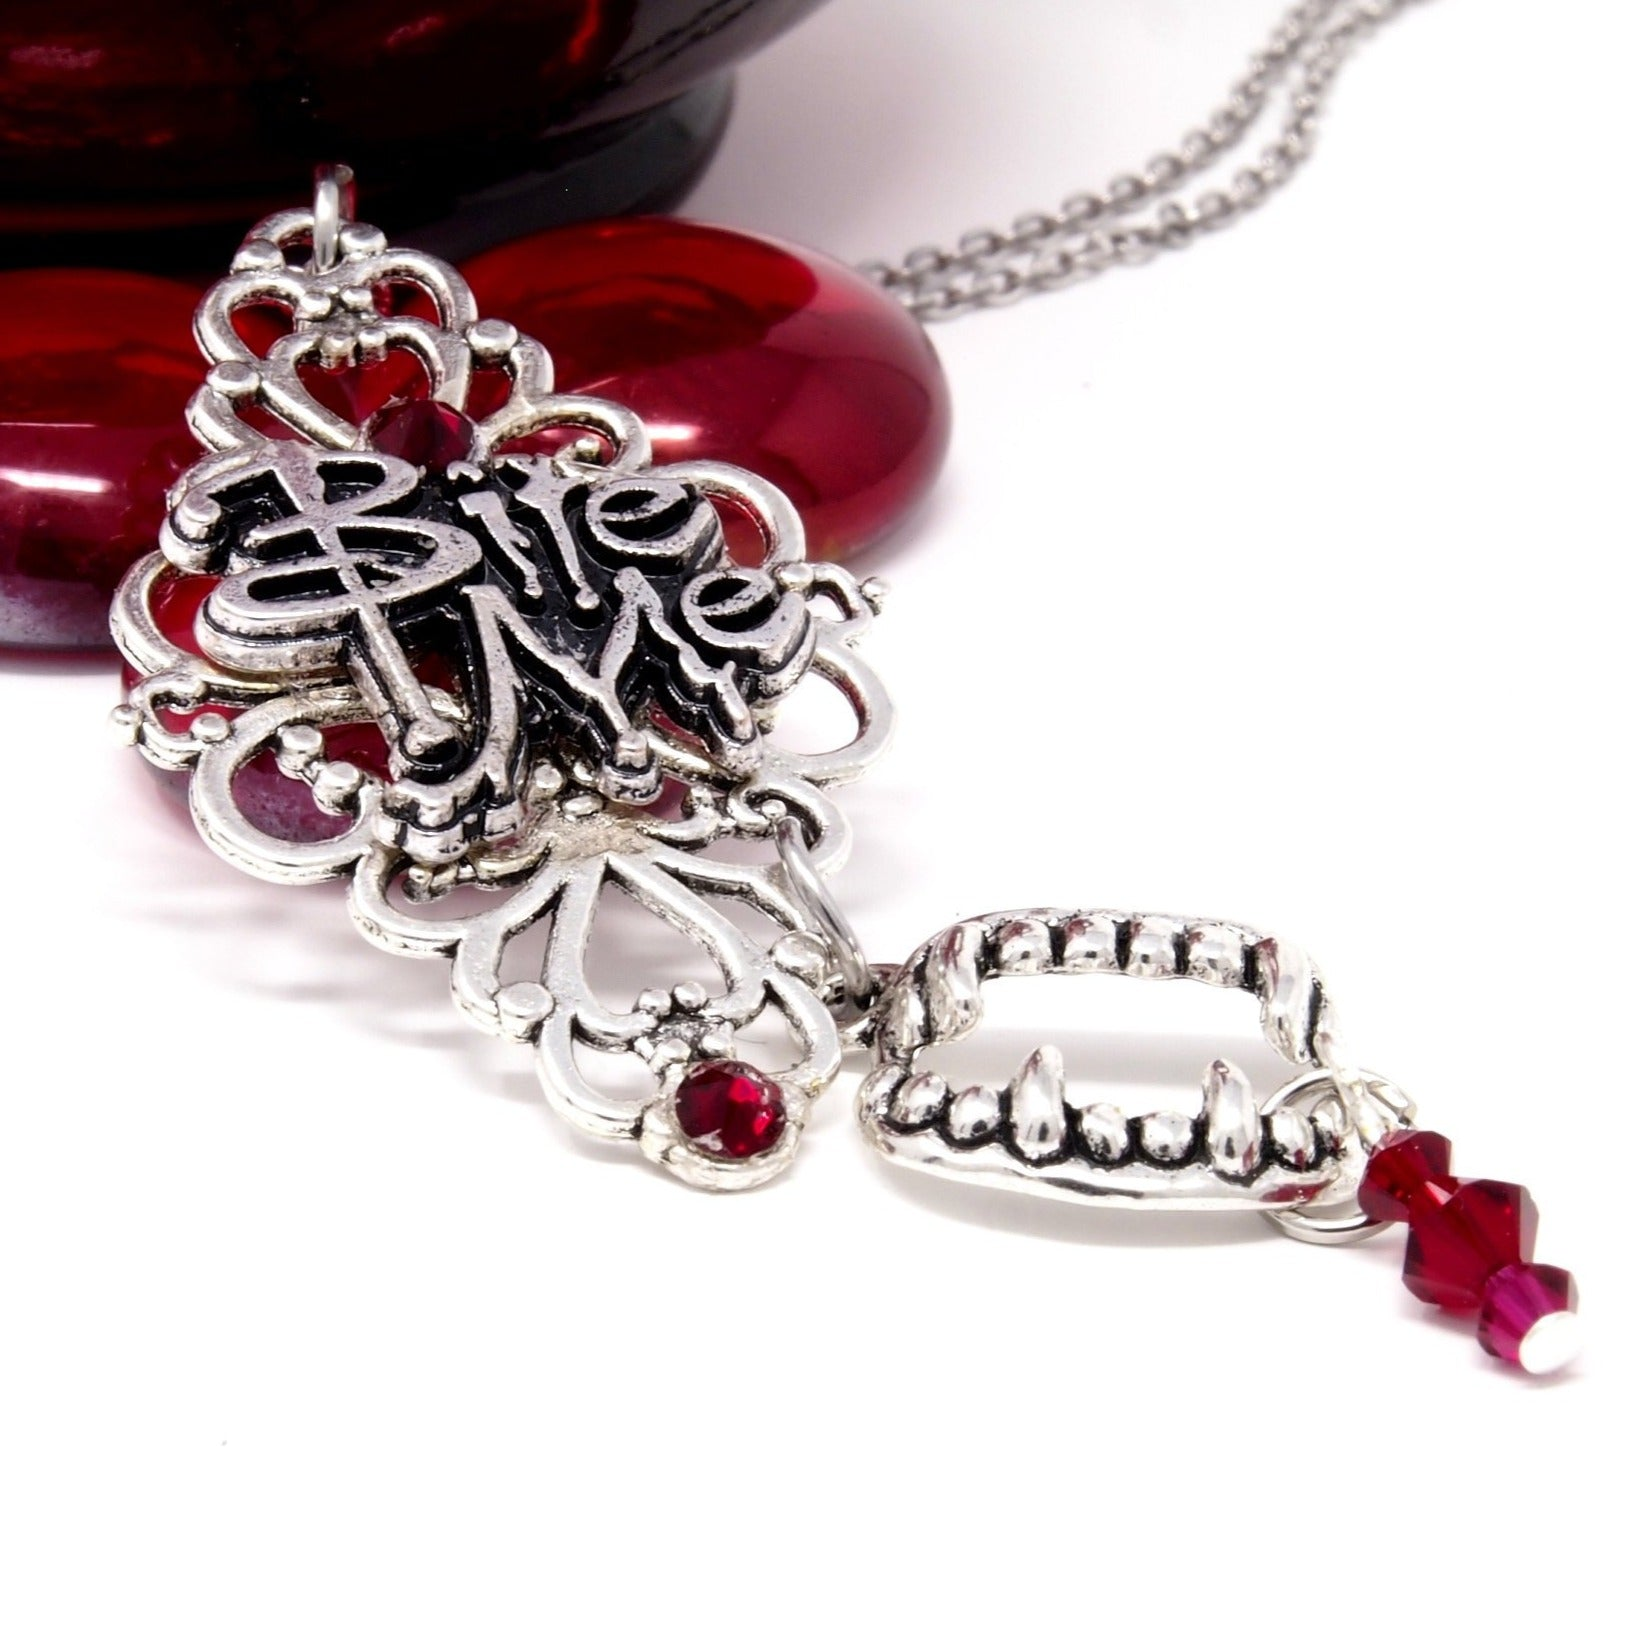 Gothic vampire necklace ~ Halloween costume jewelry